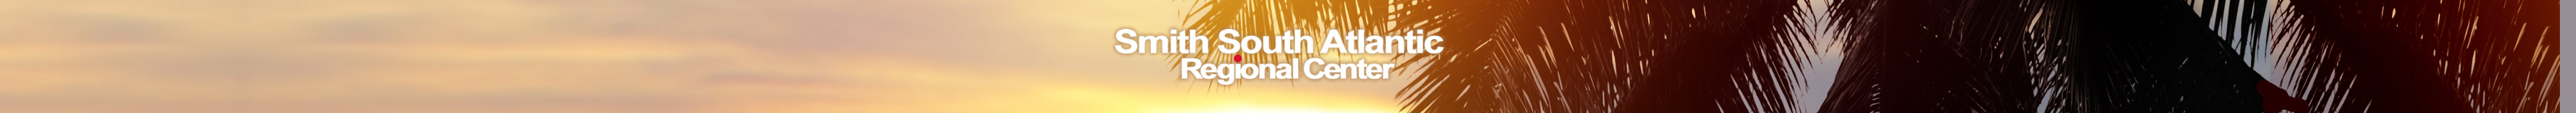 Smith South Atlantic Regional Center header with palm trees on beach.